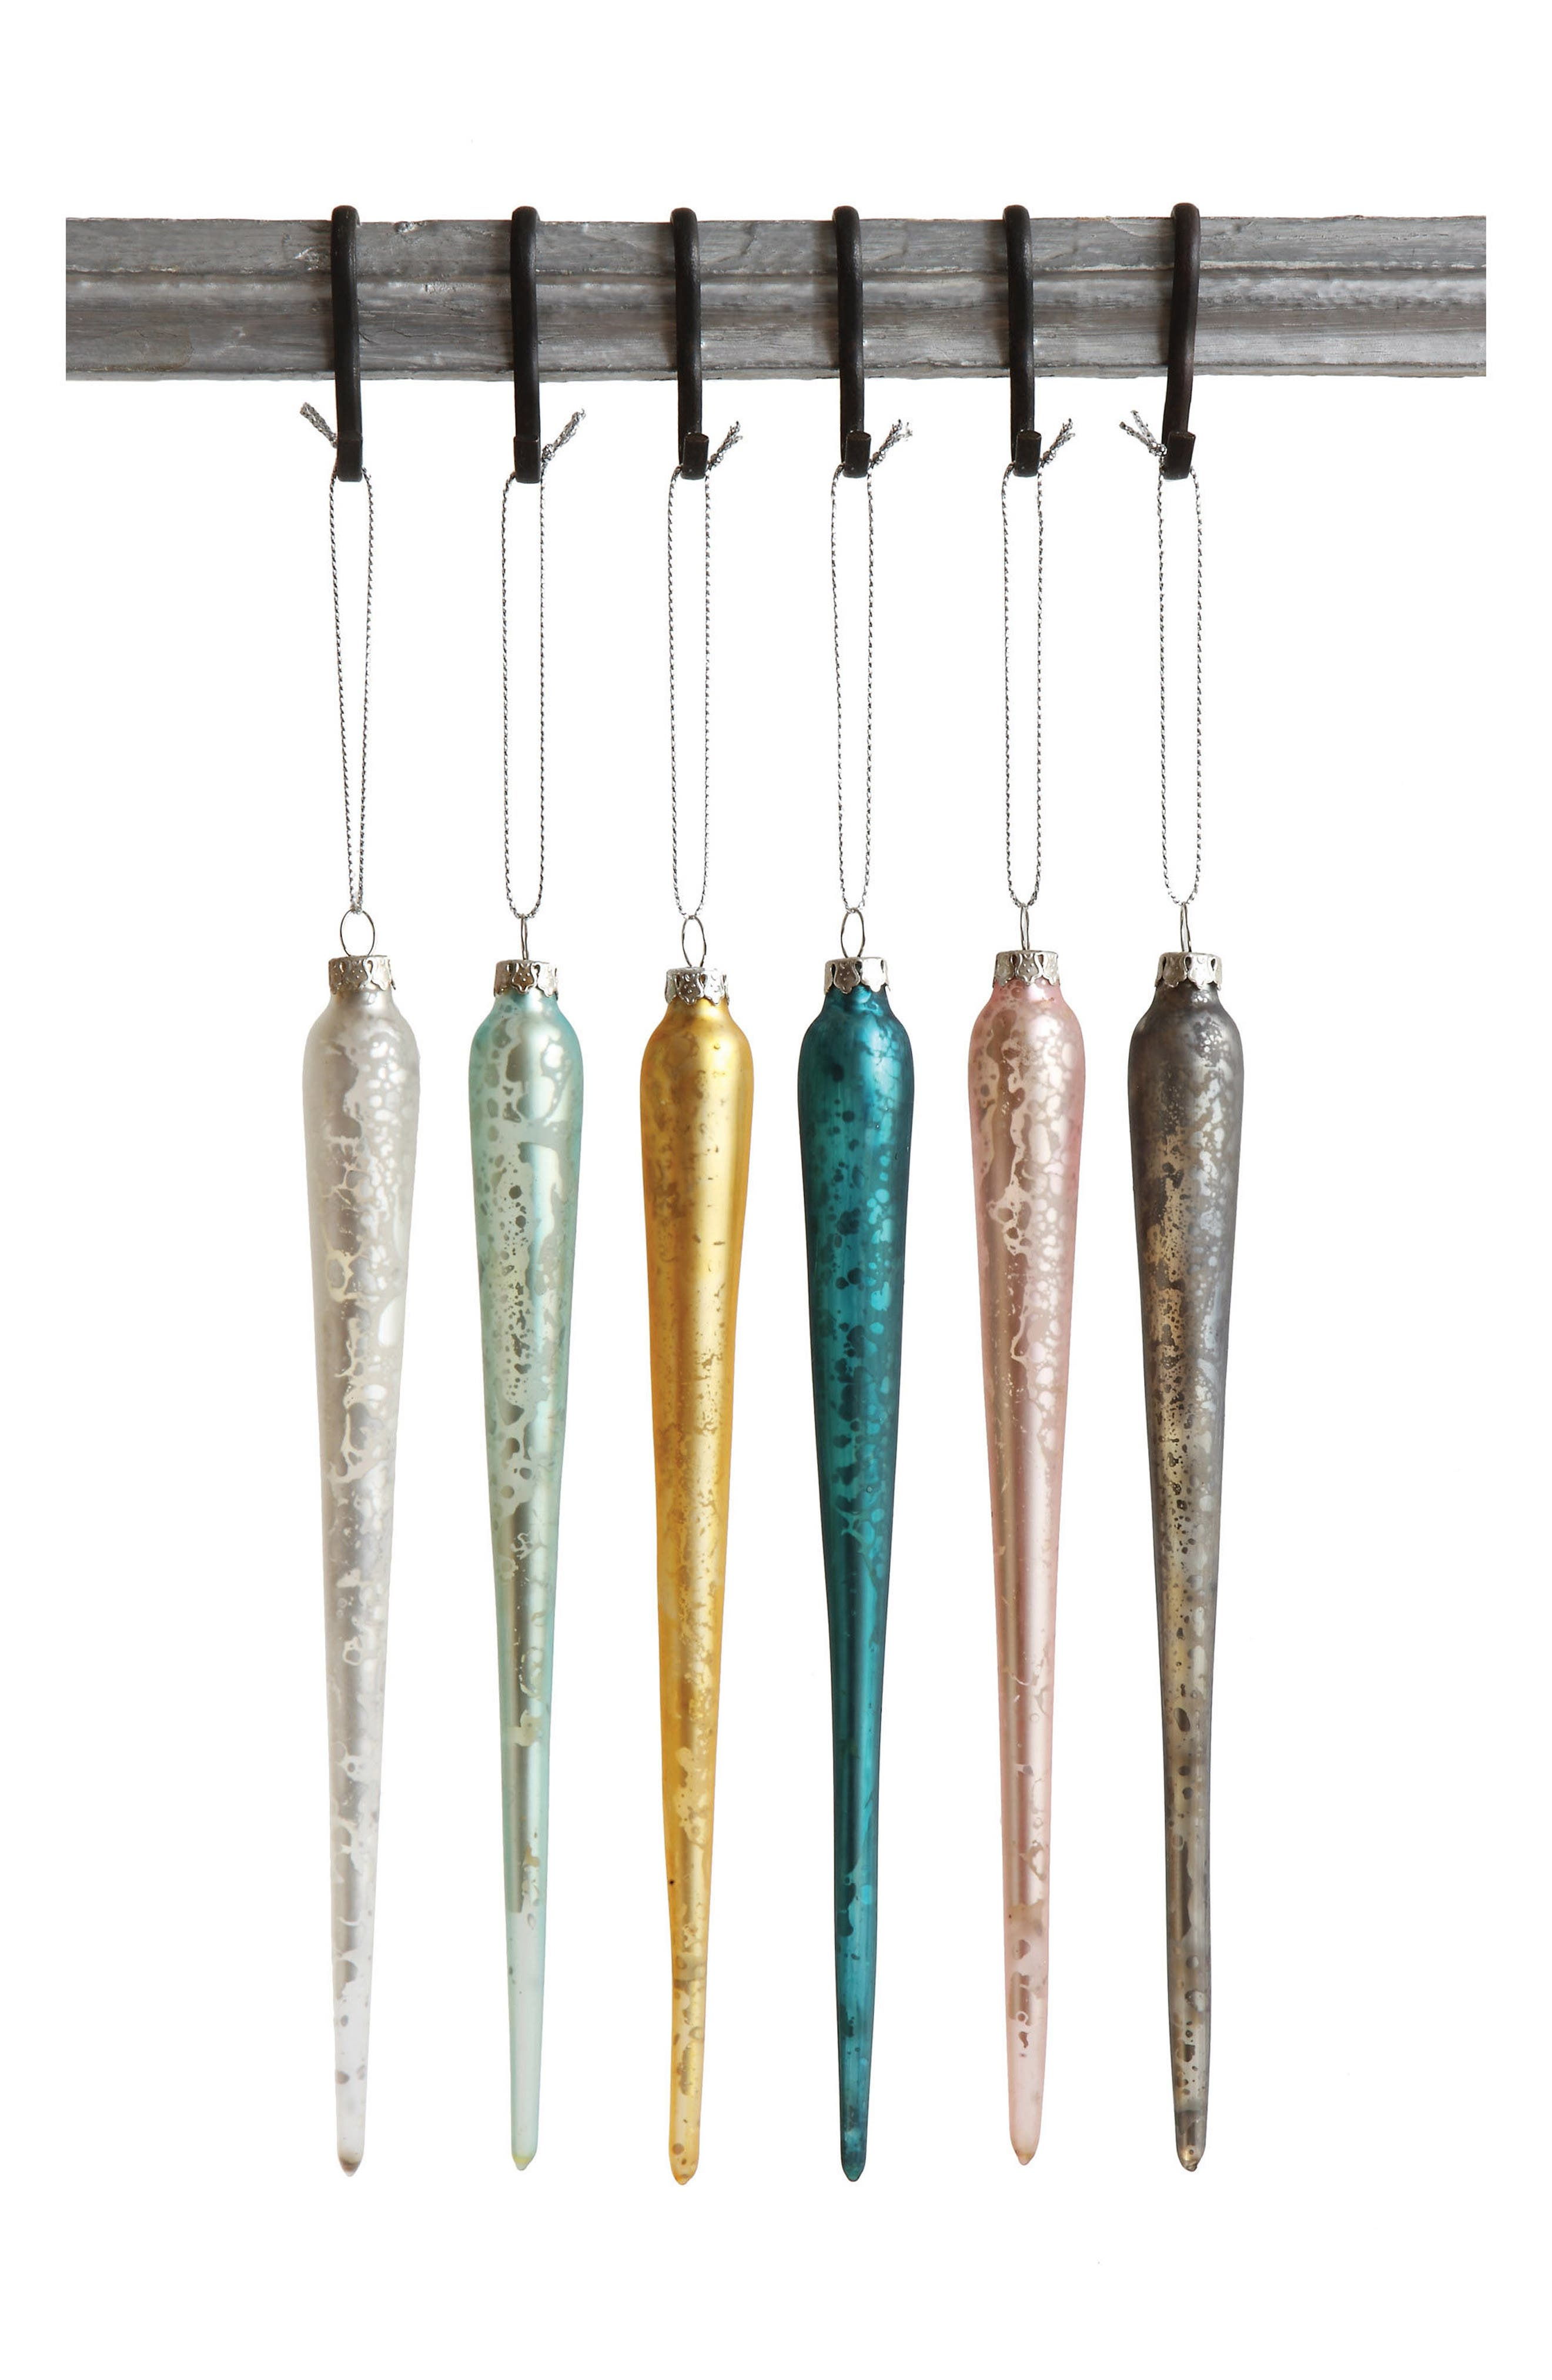 Main Image - Creative Co-Op Set of 6 Icicle Ornaments